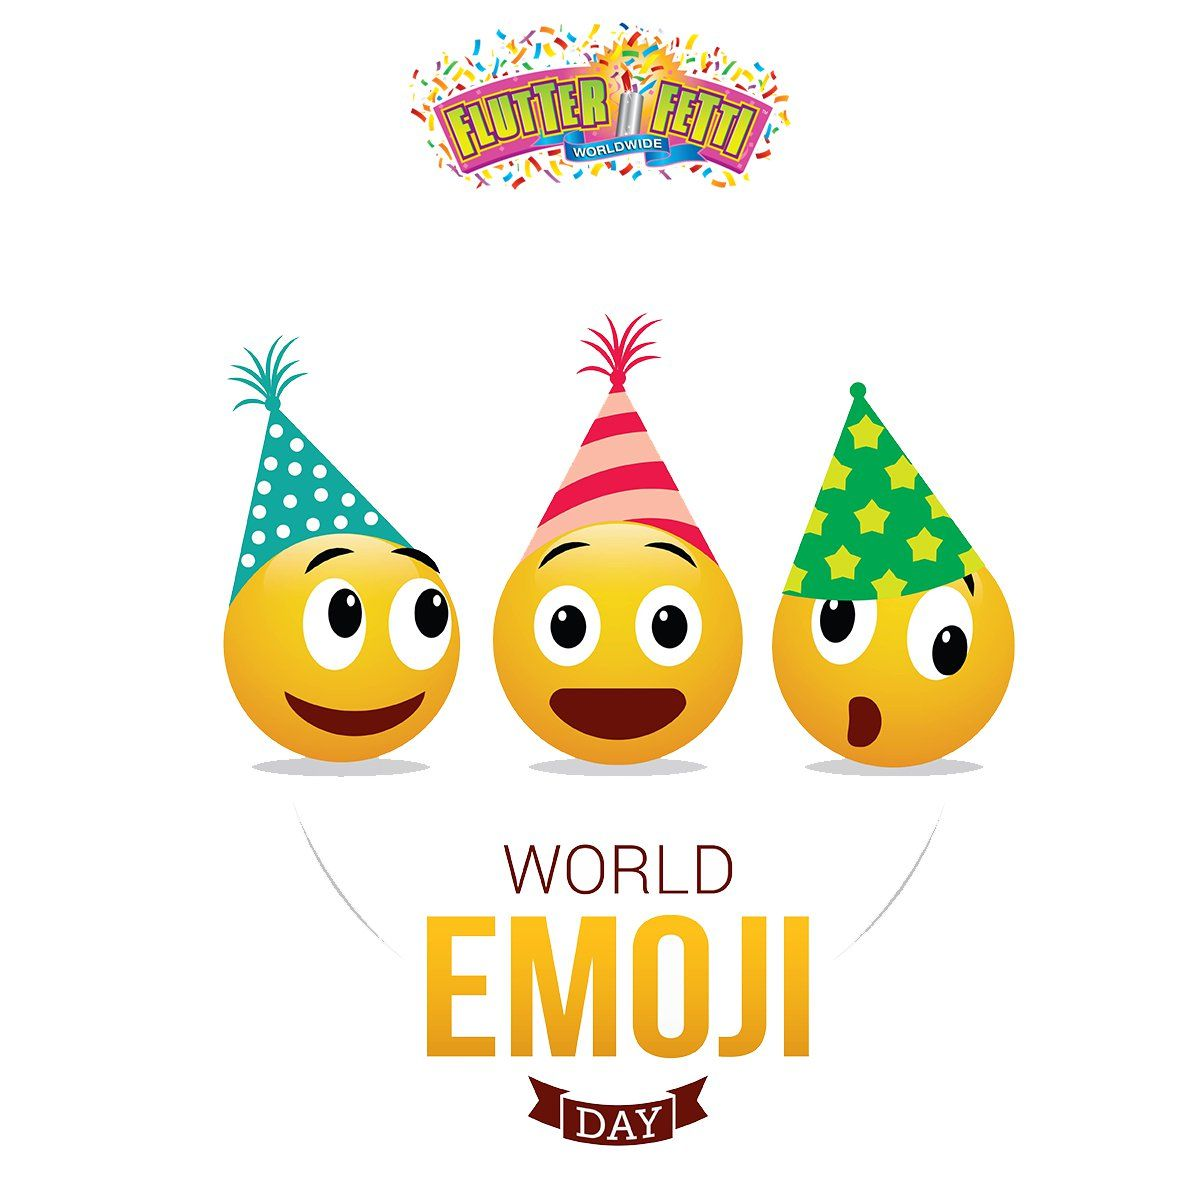 Happy World Emoji Day! . . WorldEmojiDay worldemojiday